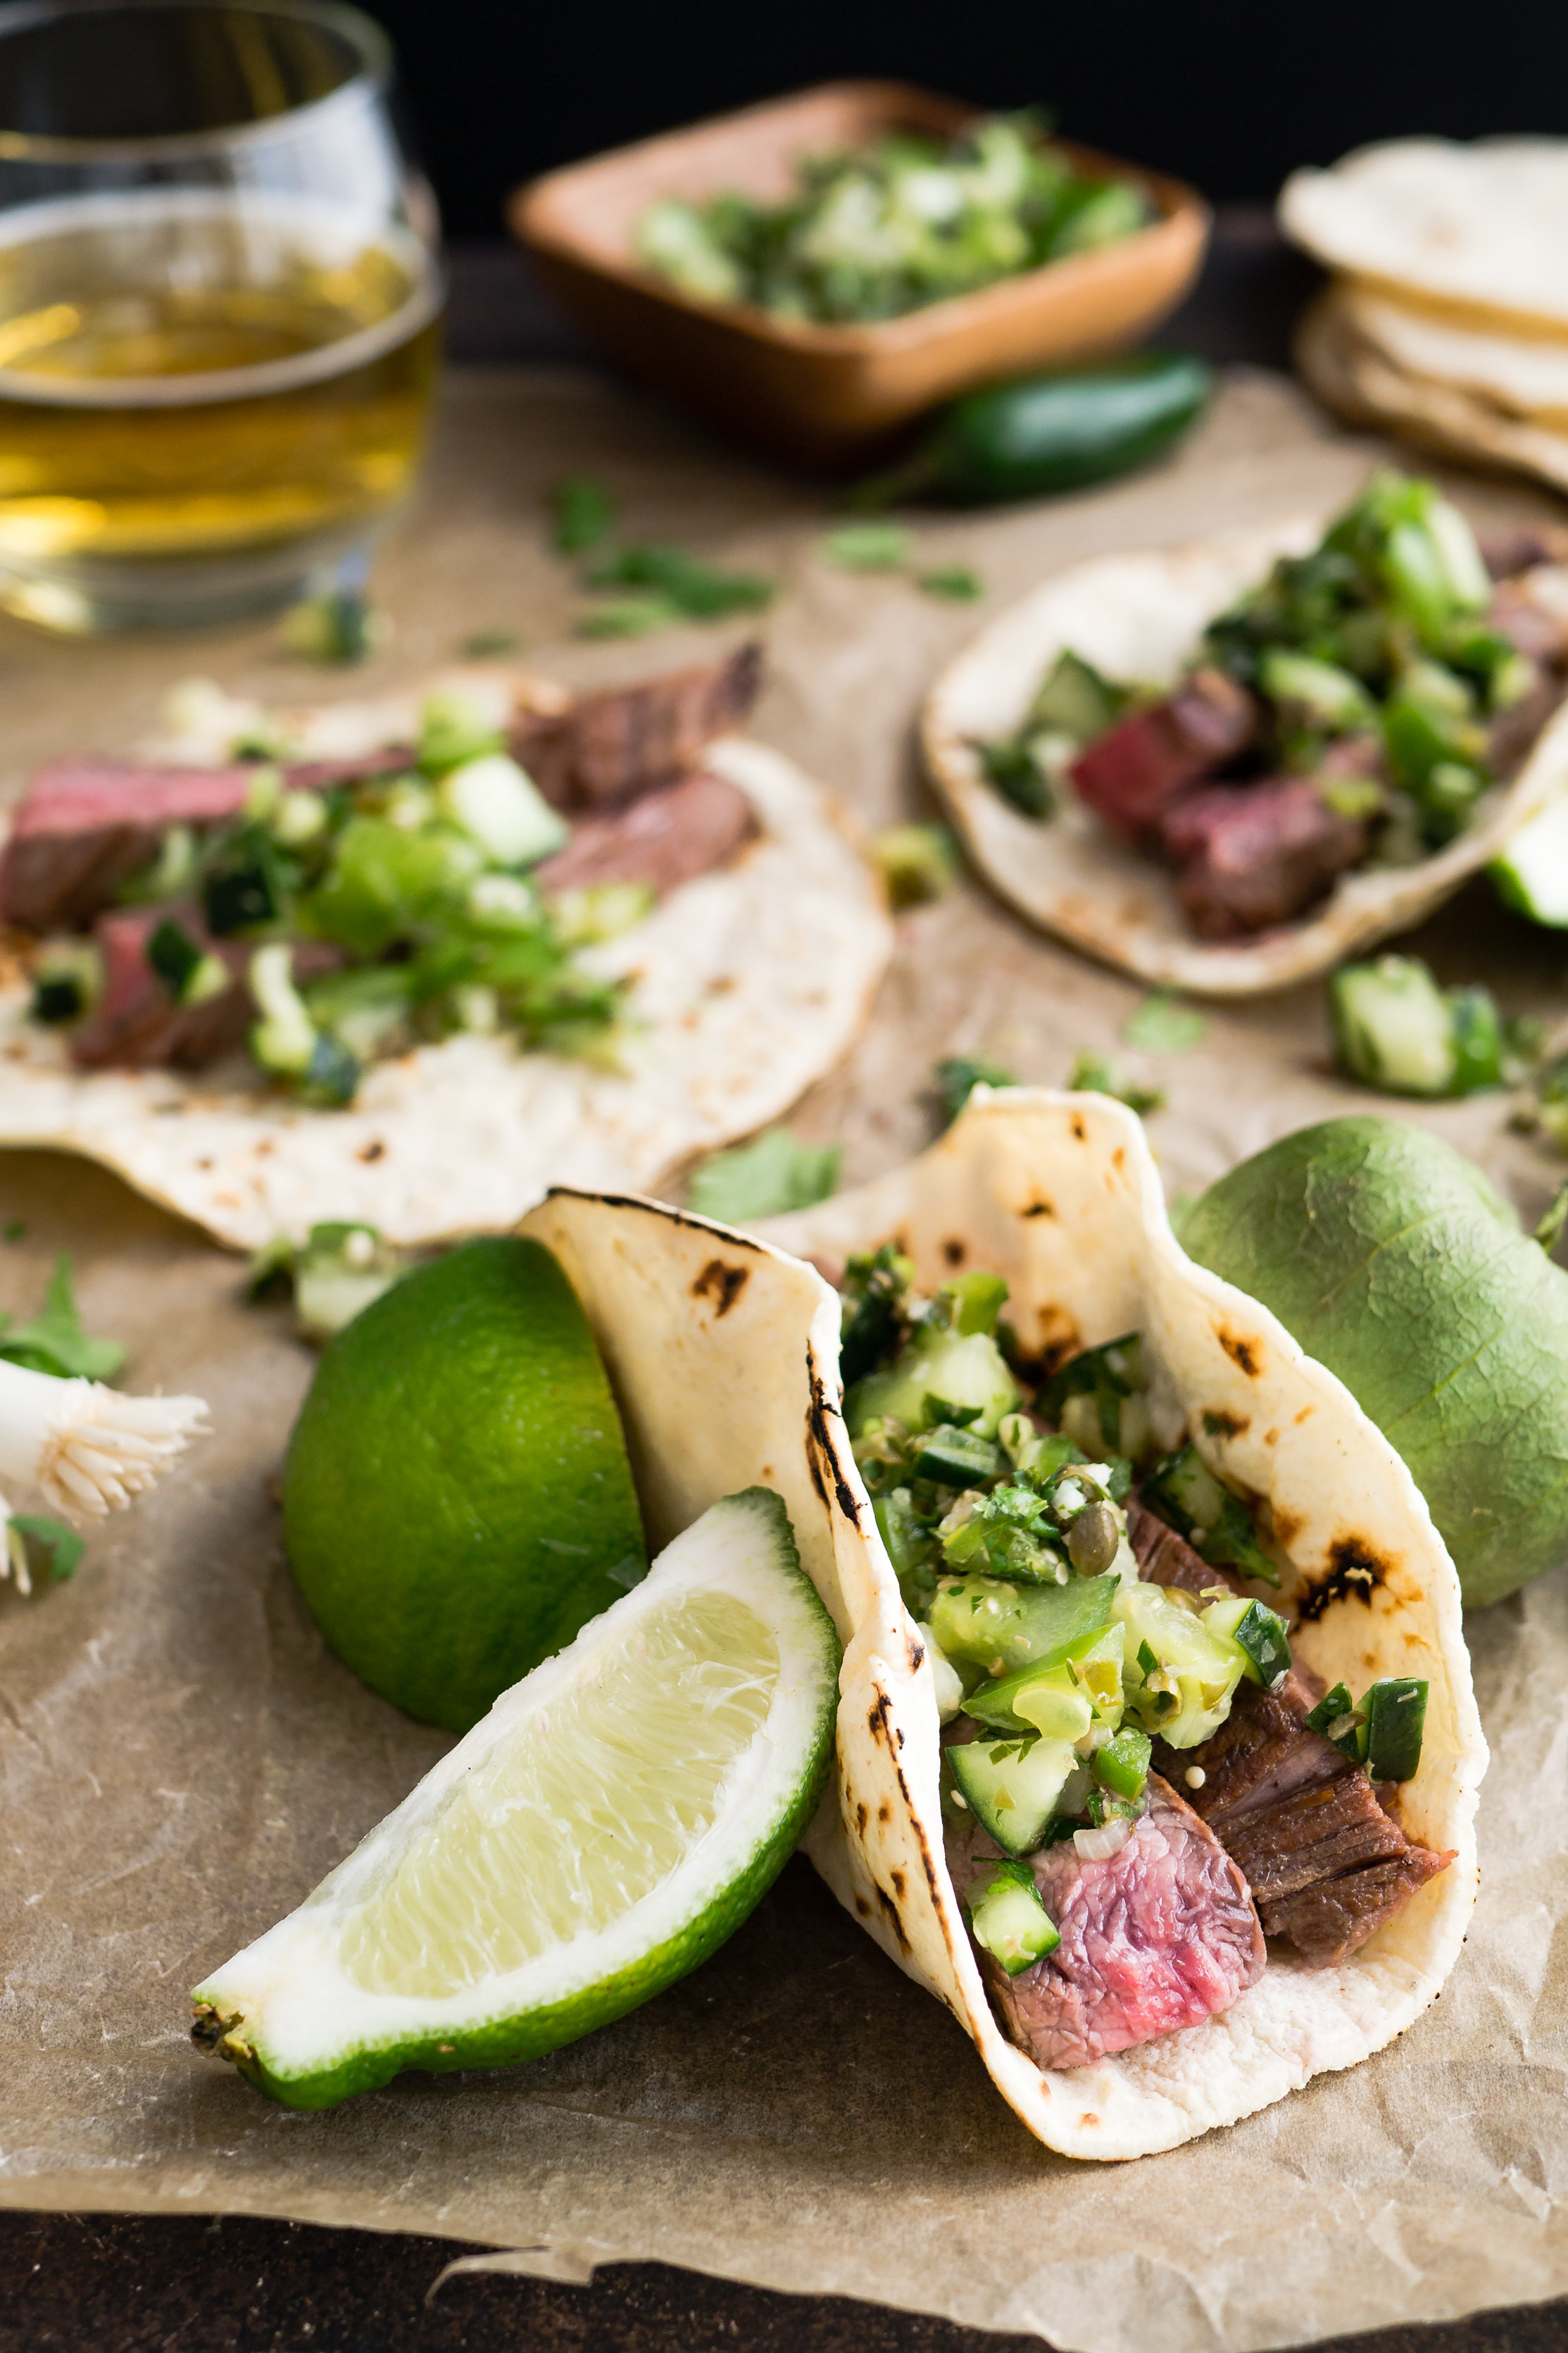 Tacos, the perfect snack, can be safe to eat in Mexico